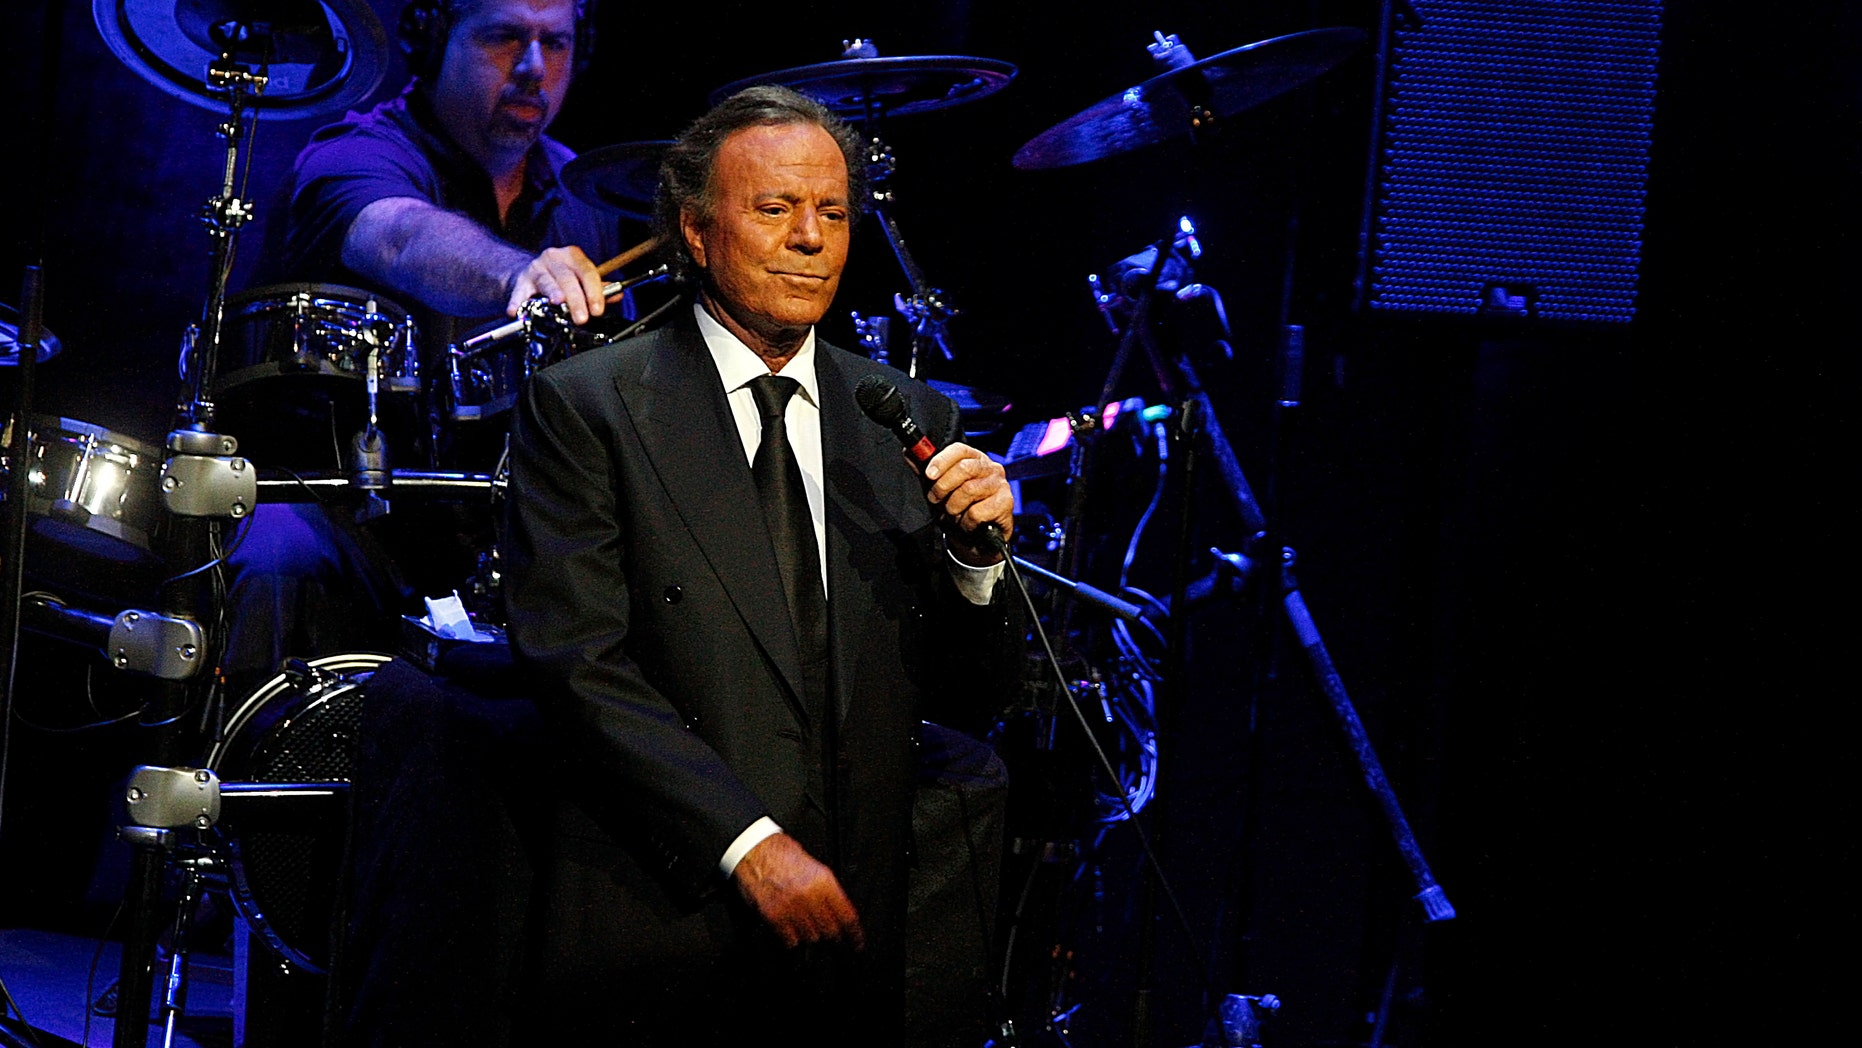 """BARCELONA, SPAIN - JULY 04:  Julio Iglesias performs """"Julio Iglesias In Concert At Gran Teatre del Liceu"""" on July 4, 2012. (Photo by Miquel Benitez/Getty Images)"""